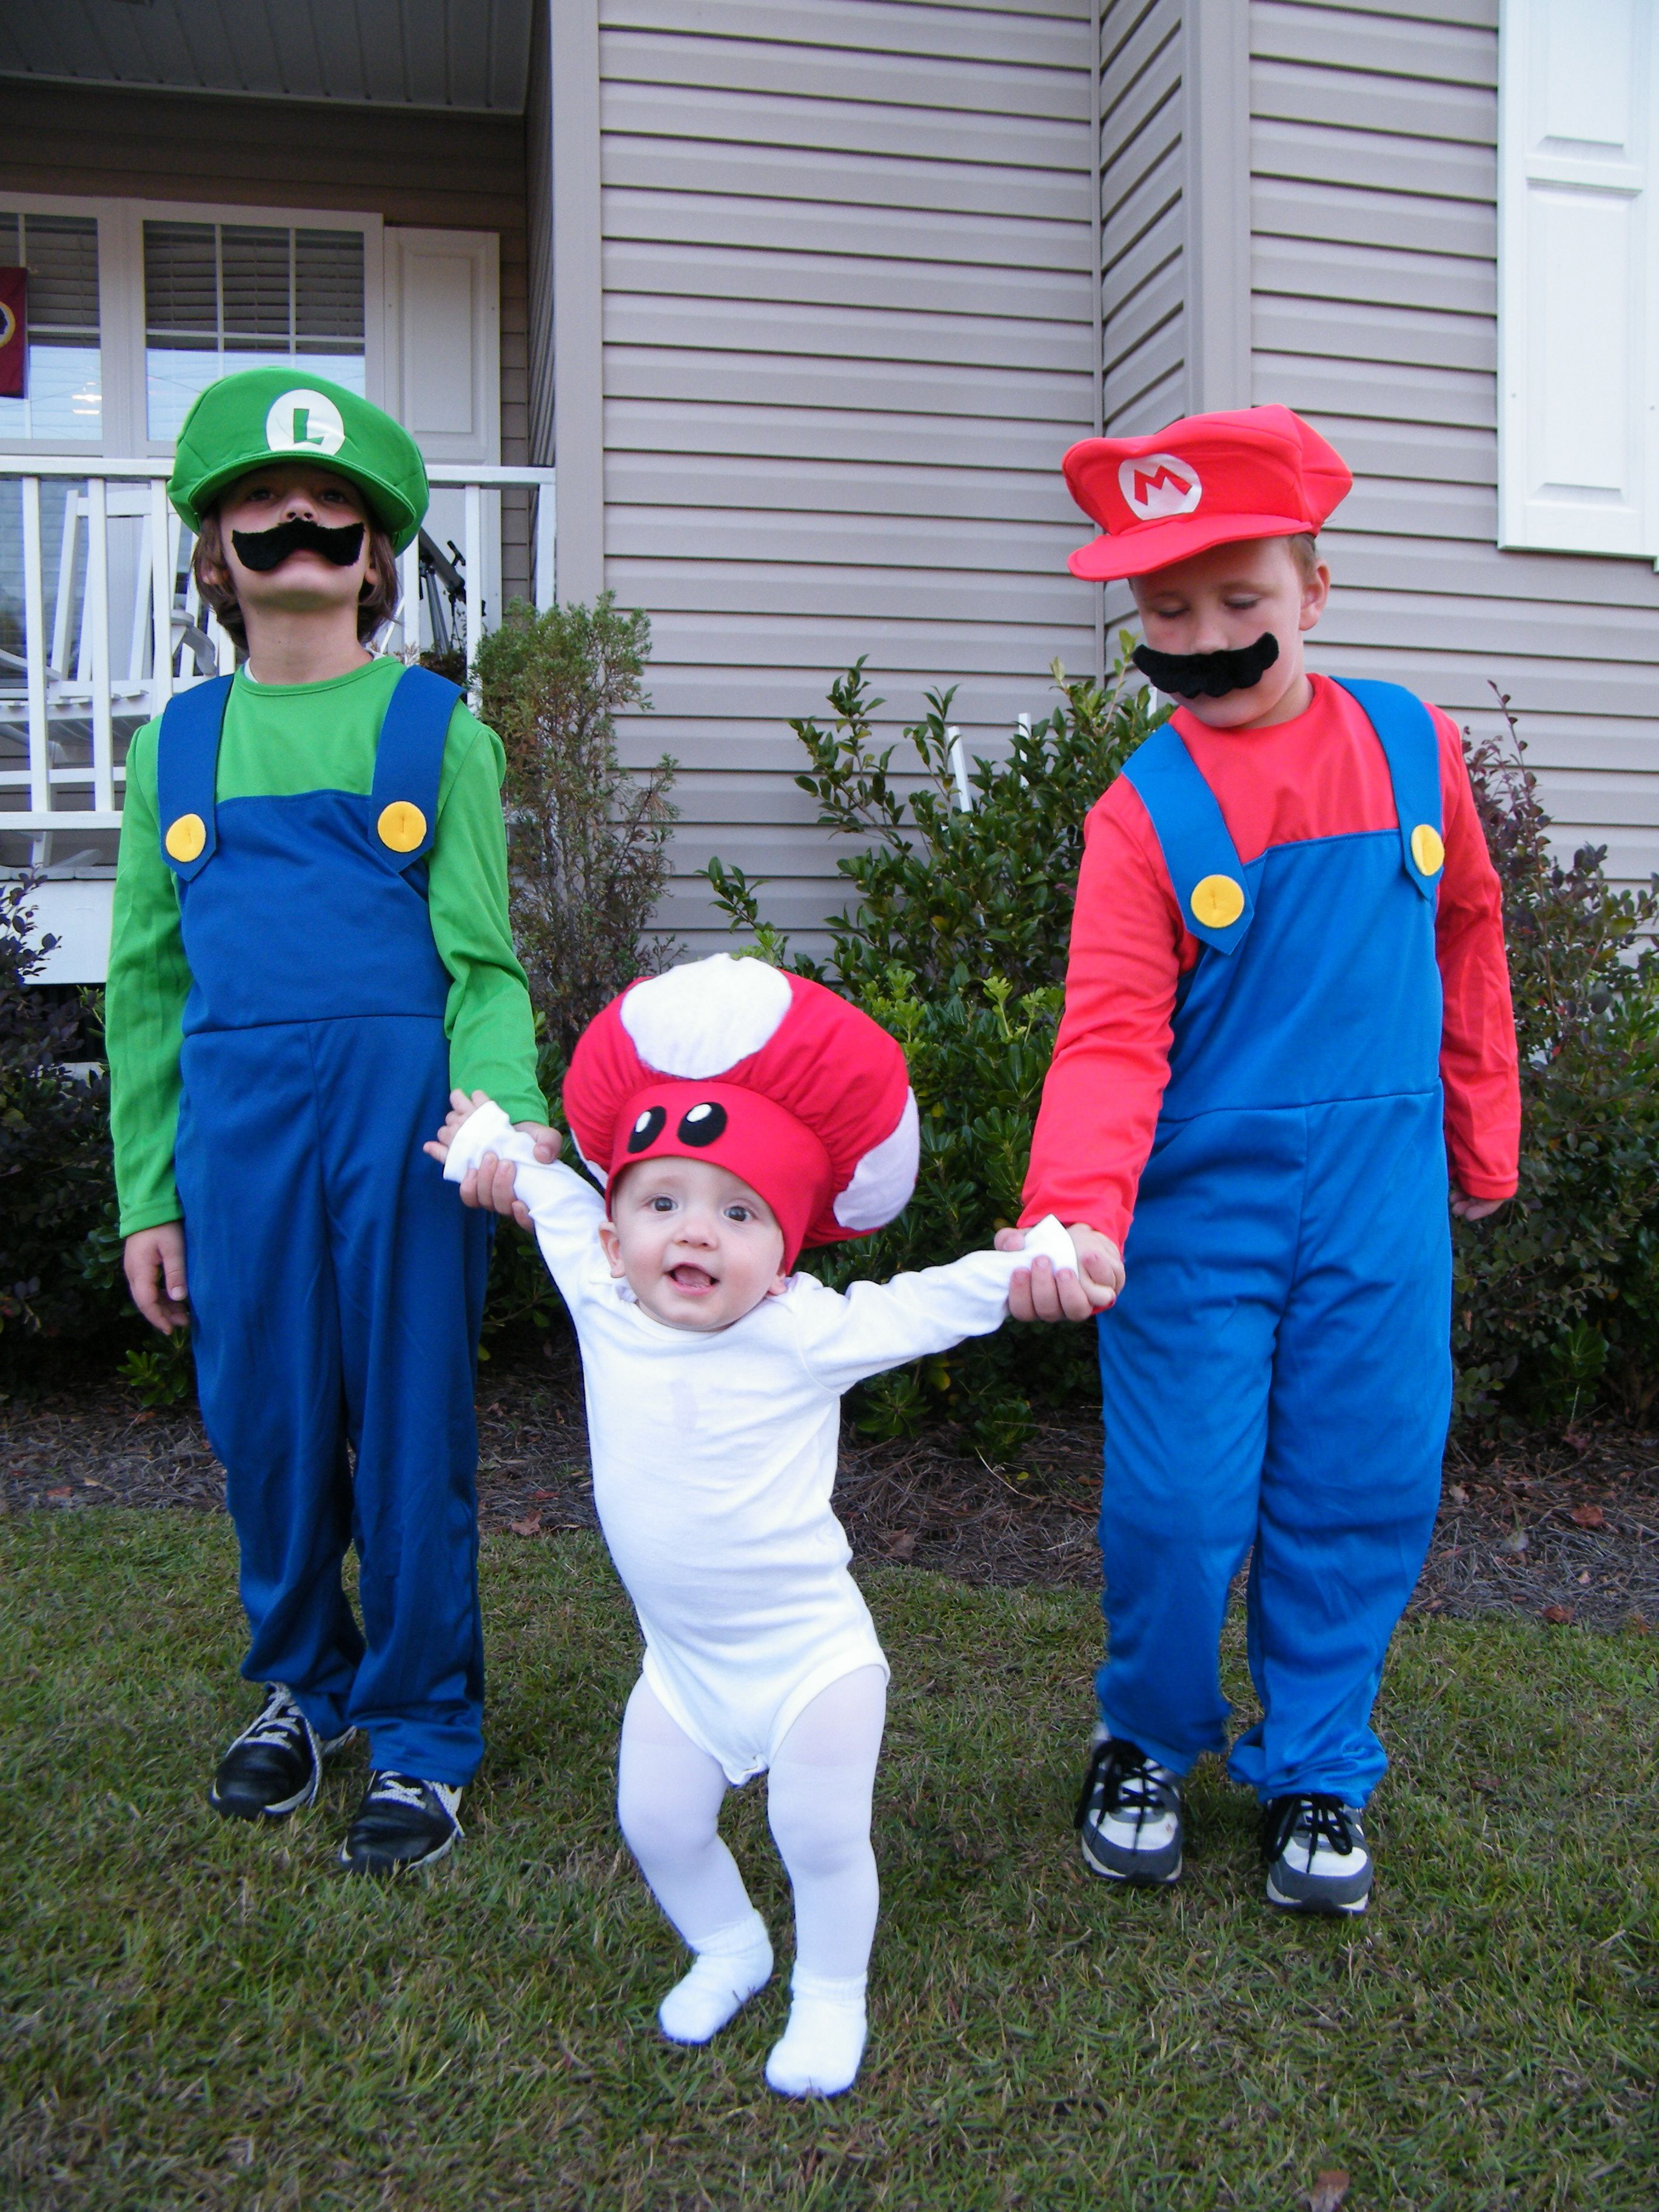 mario brothers costumes oh man my boys would love this i wonder